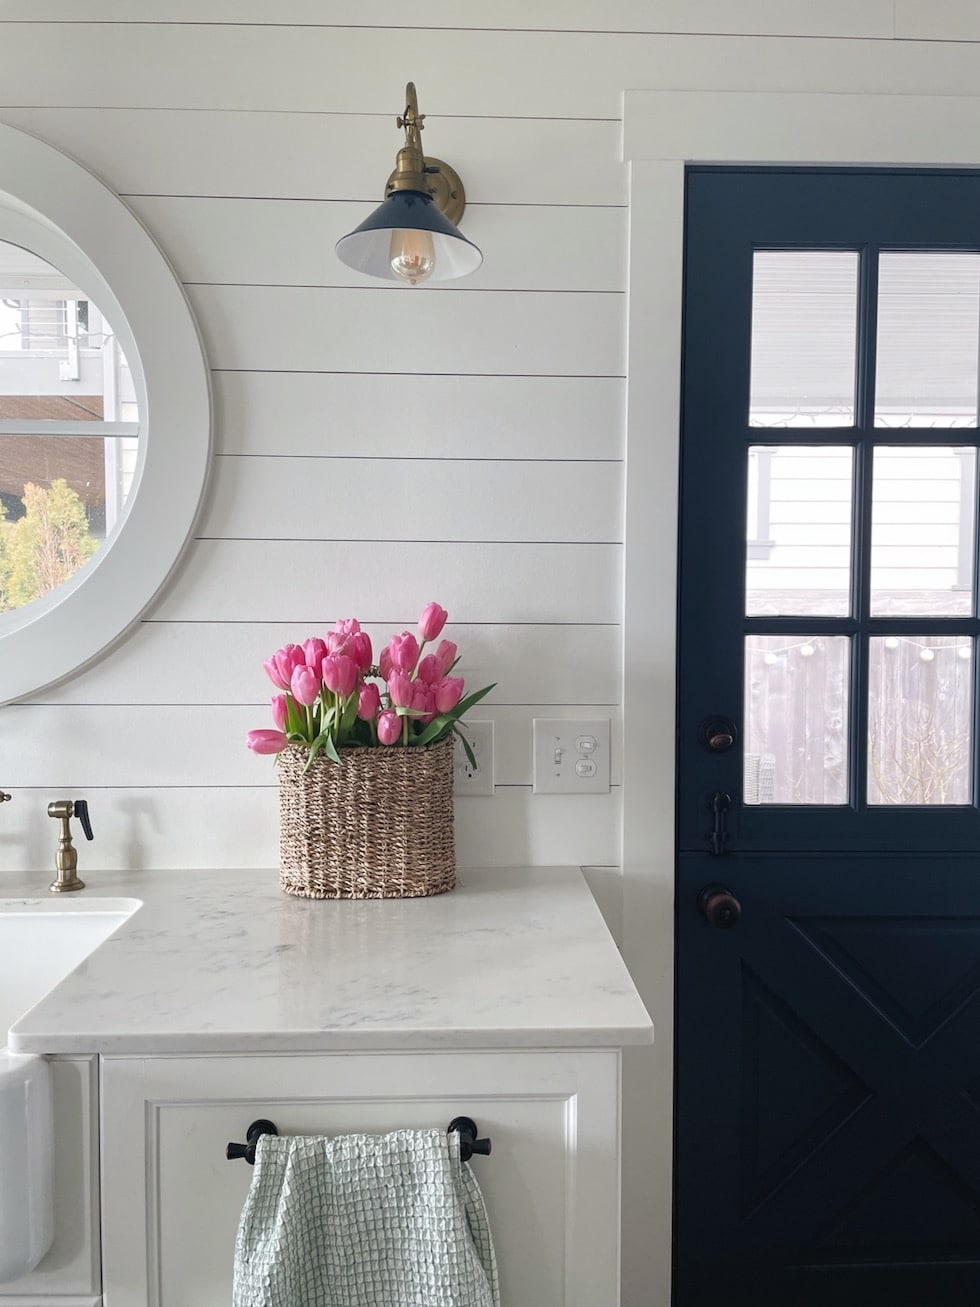 Simple Budget-Friendly Spring Decorating Idea